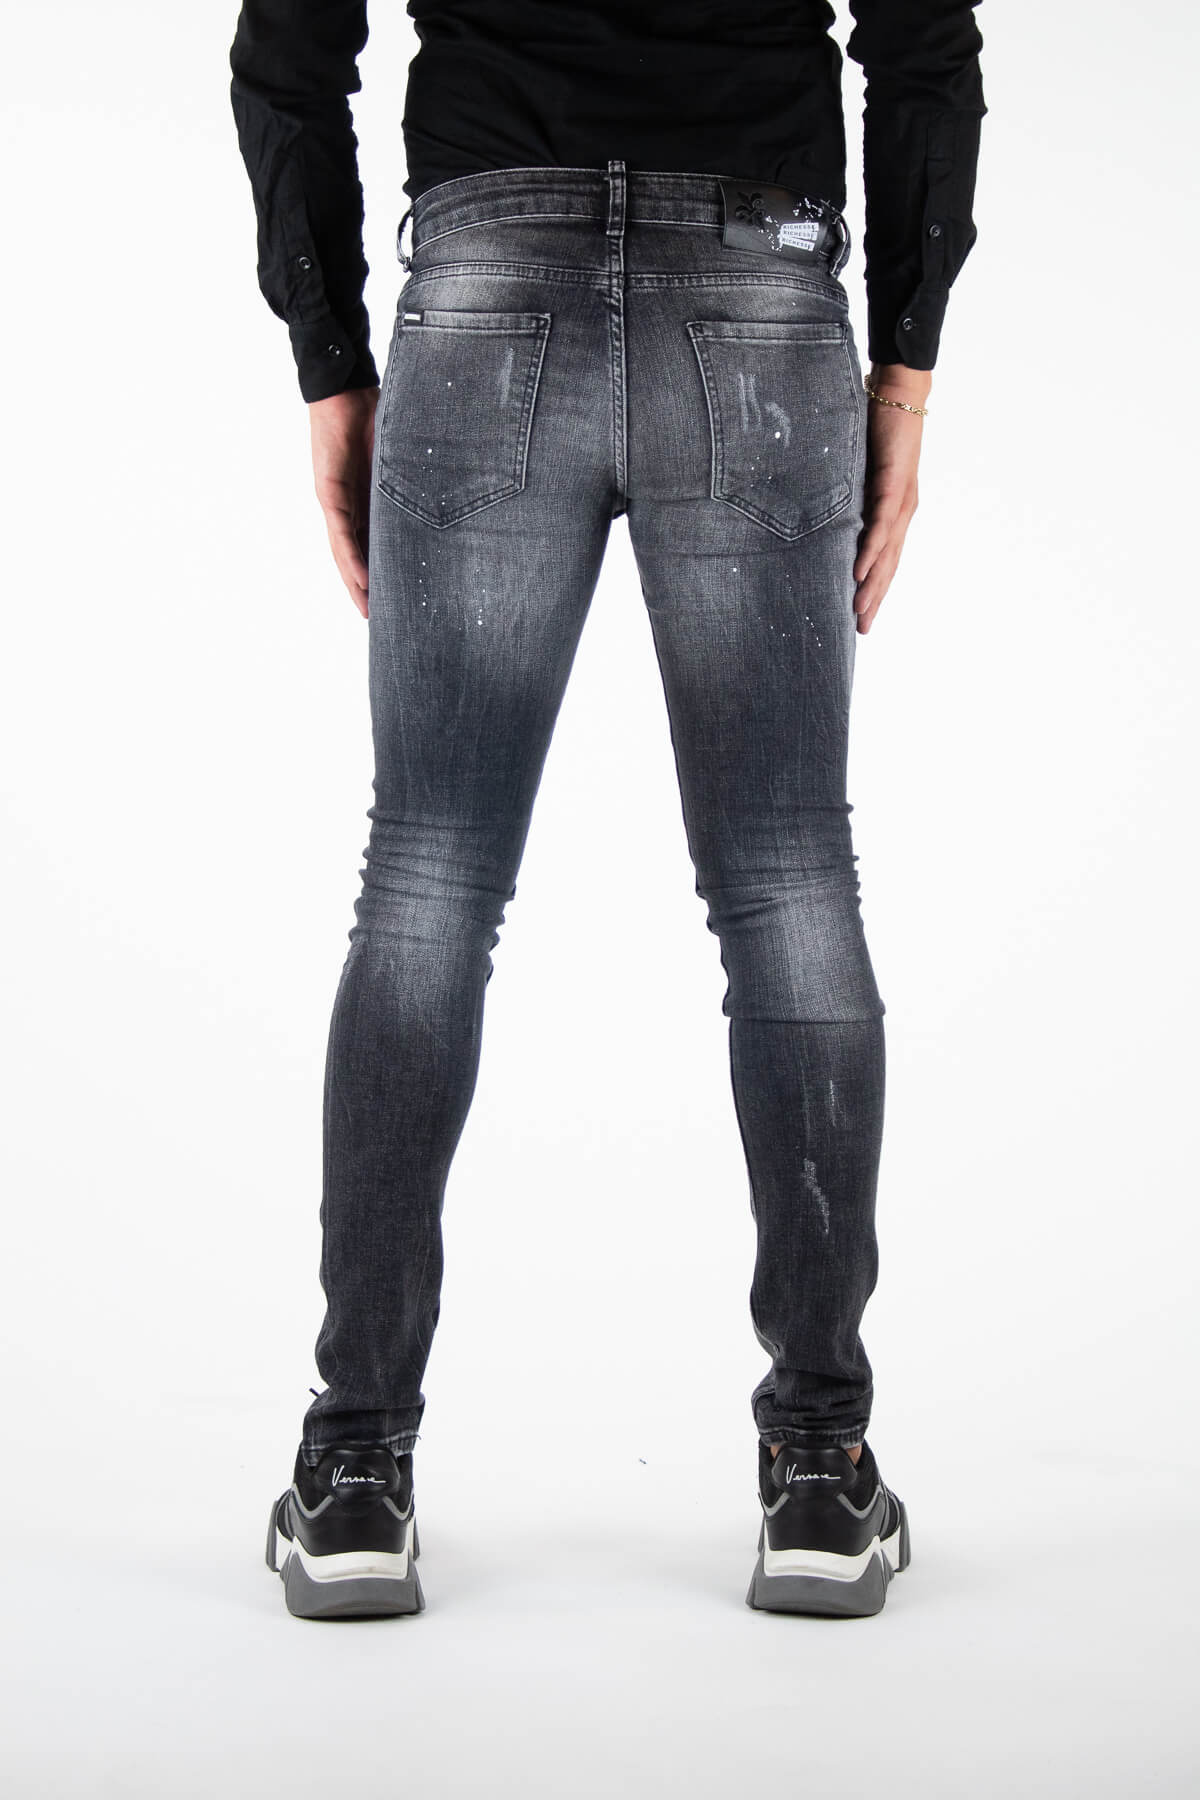 Palencia Deluxe Grey Jeans-4